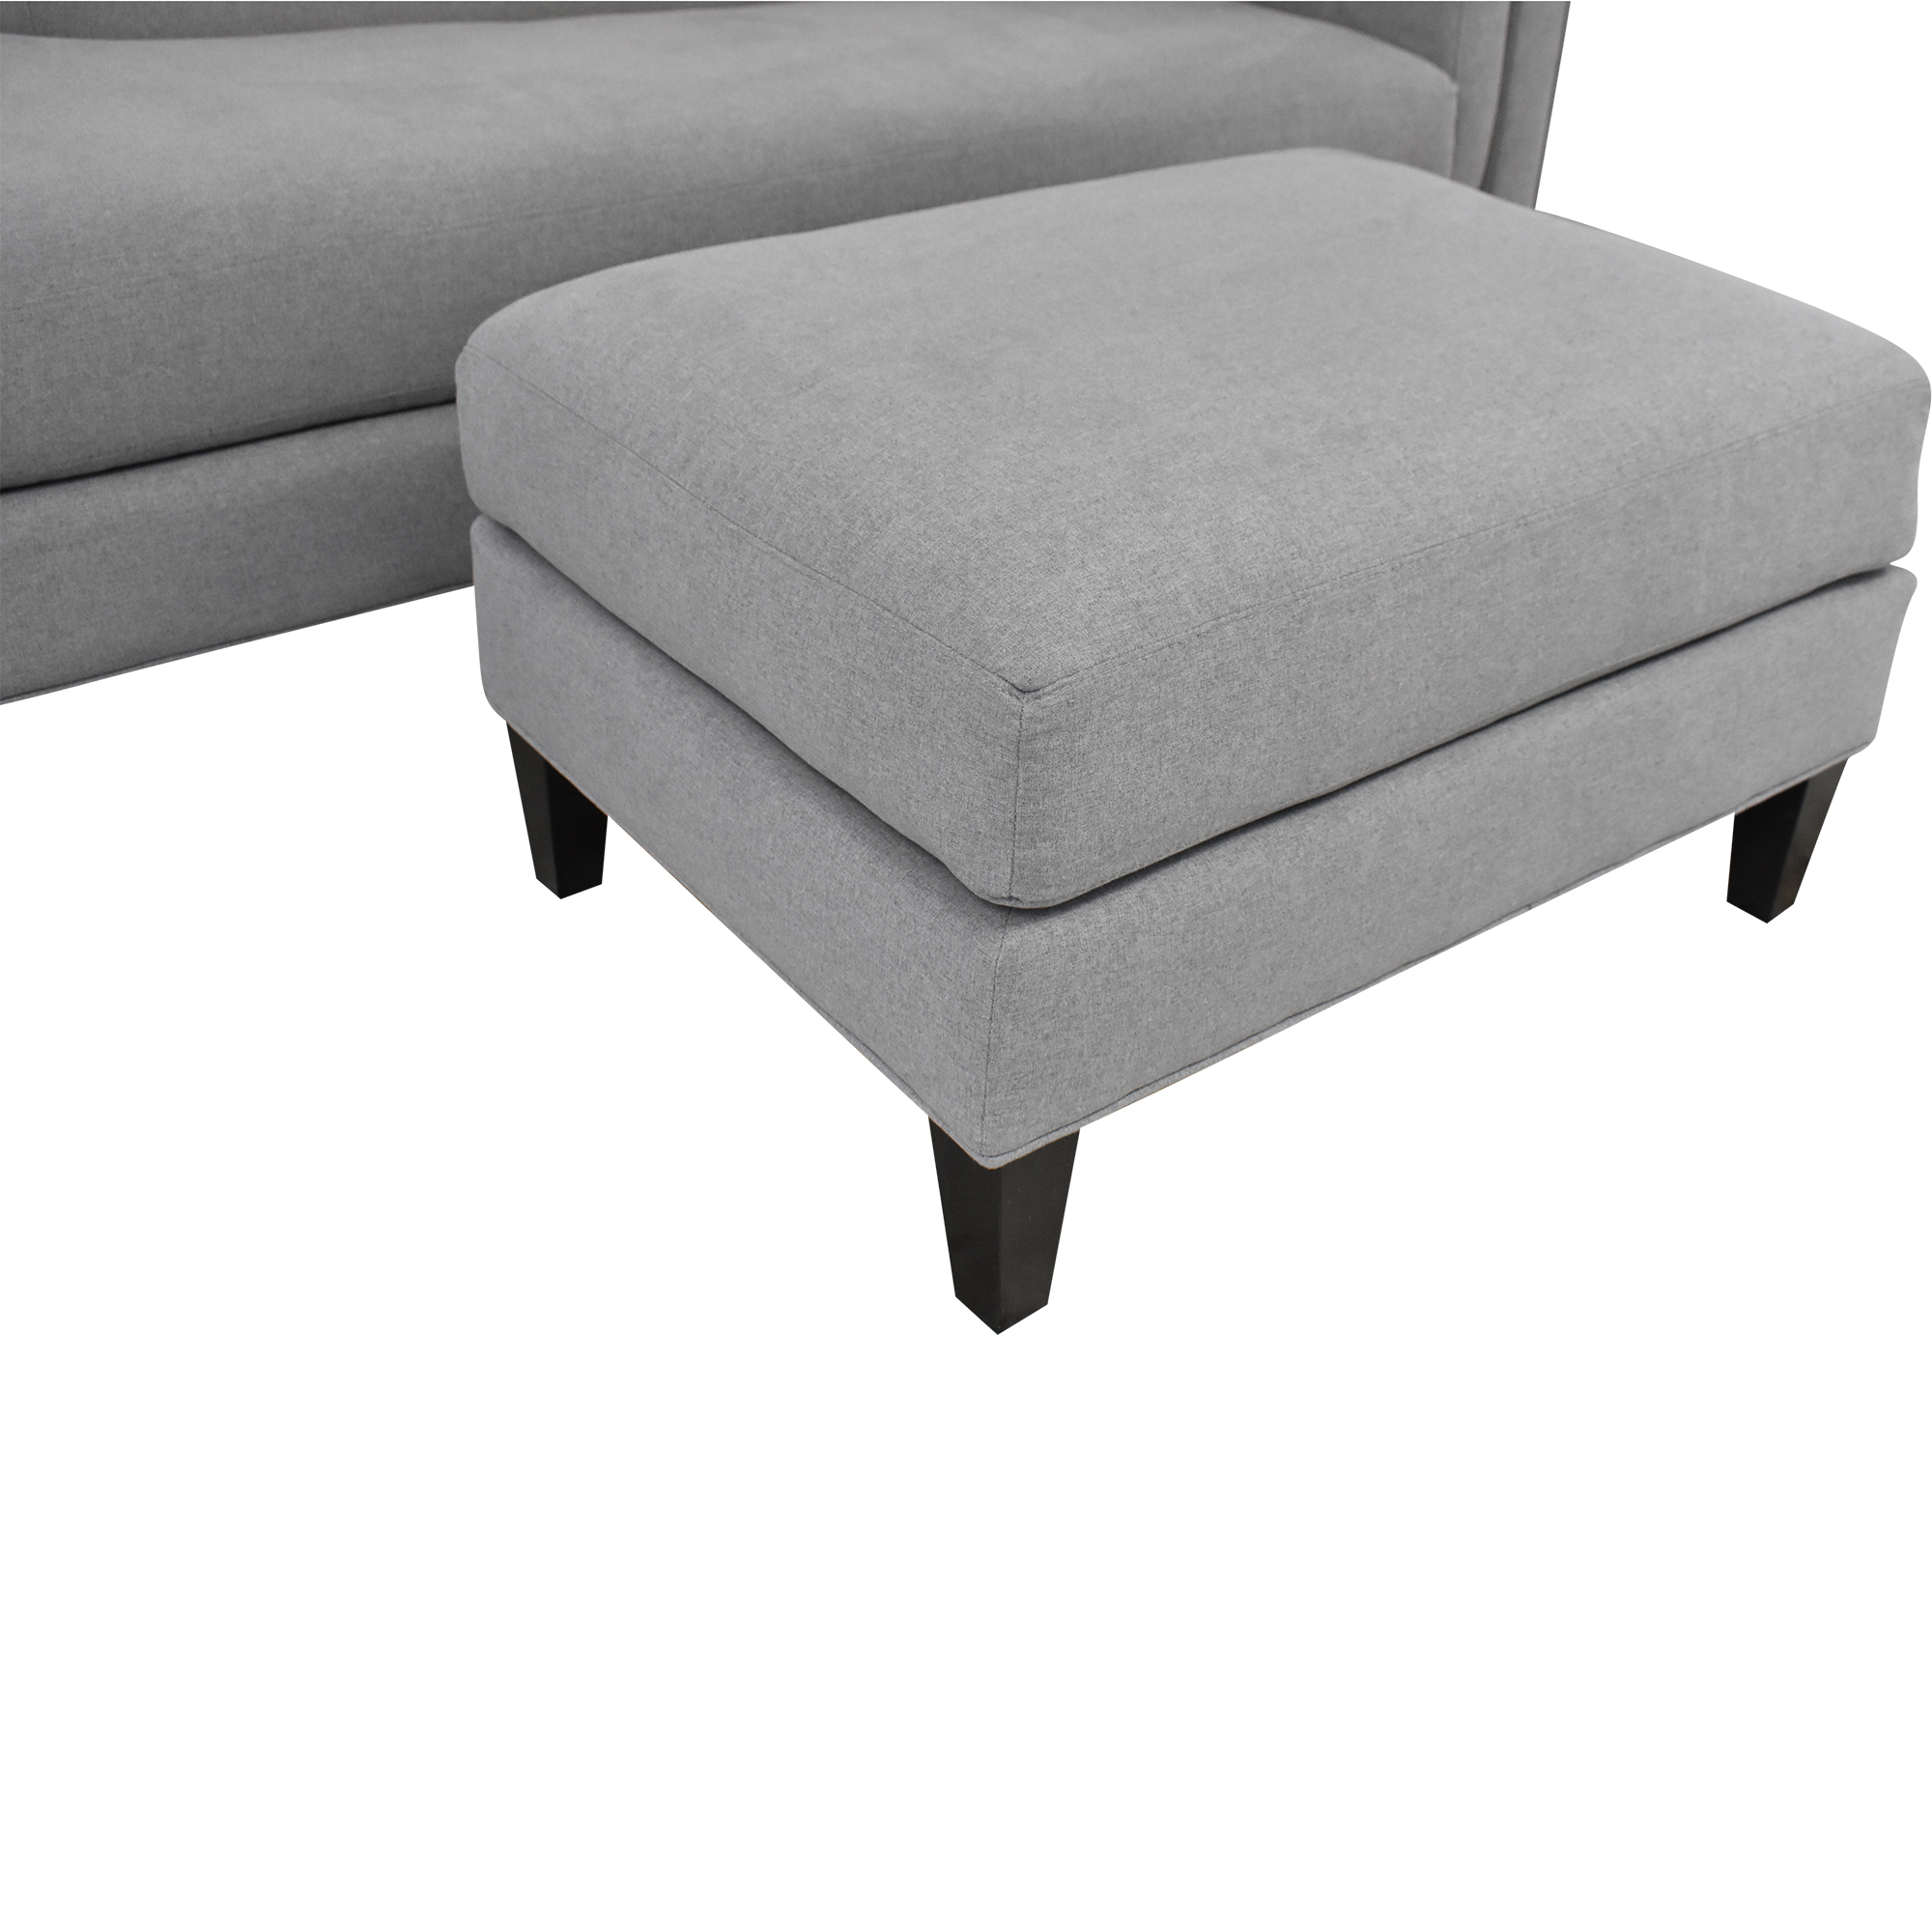 buy Macy's Macy's Braylei Fabric Chaise with Ottoman online